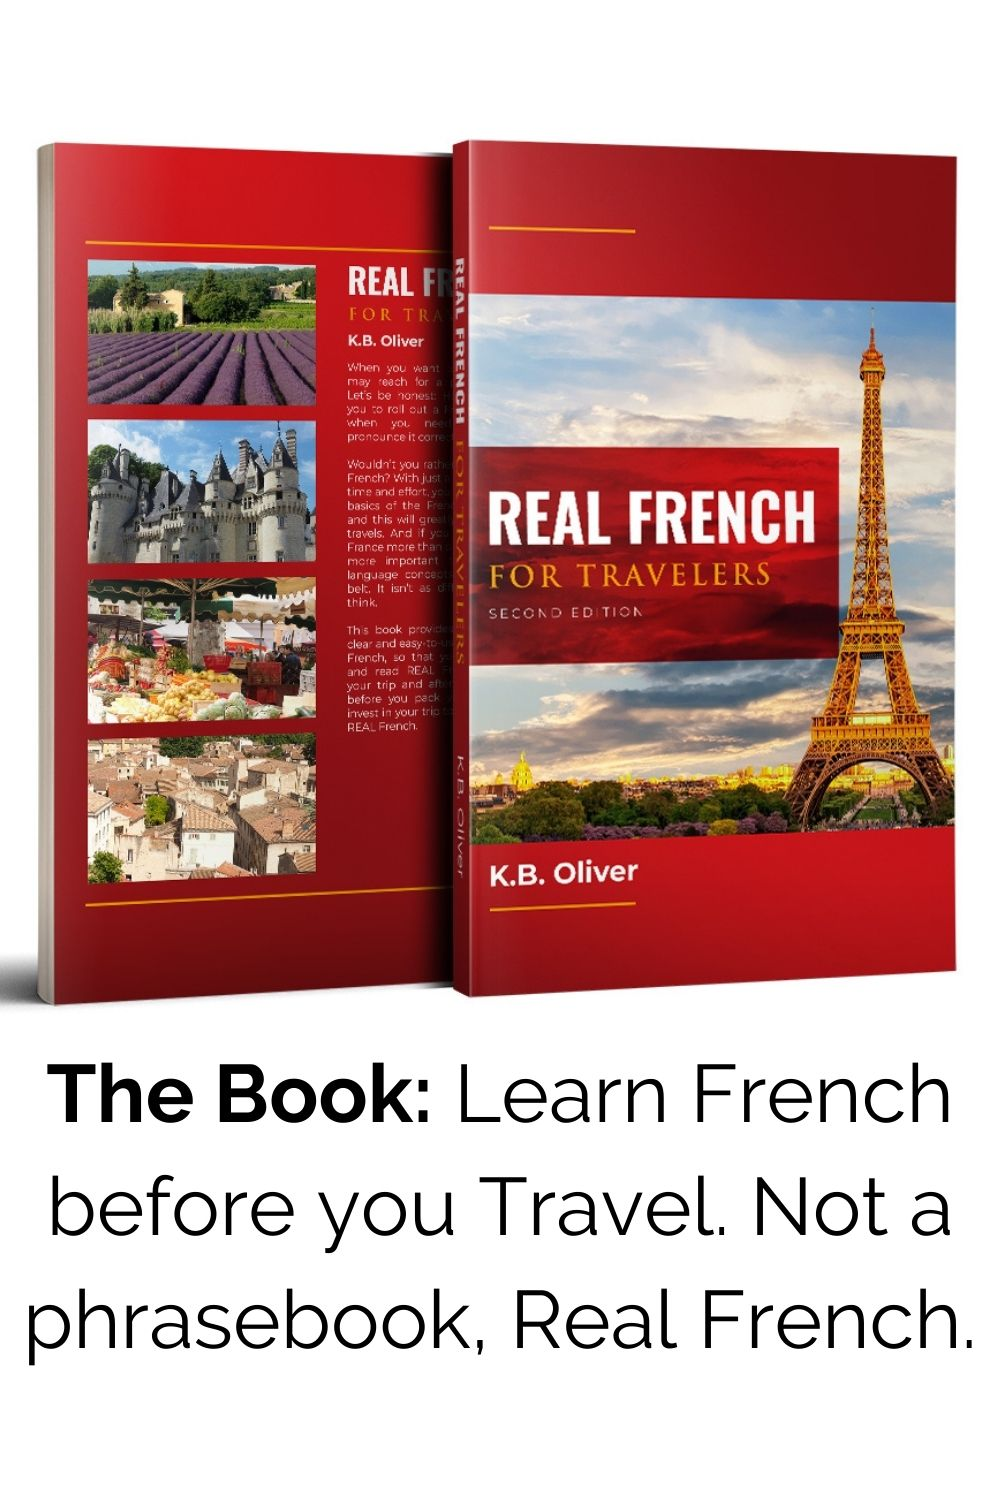 Real French for Travelers: The Book